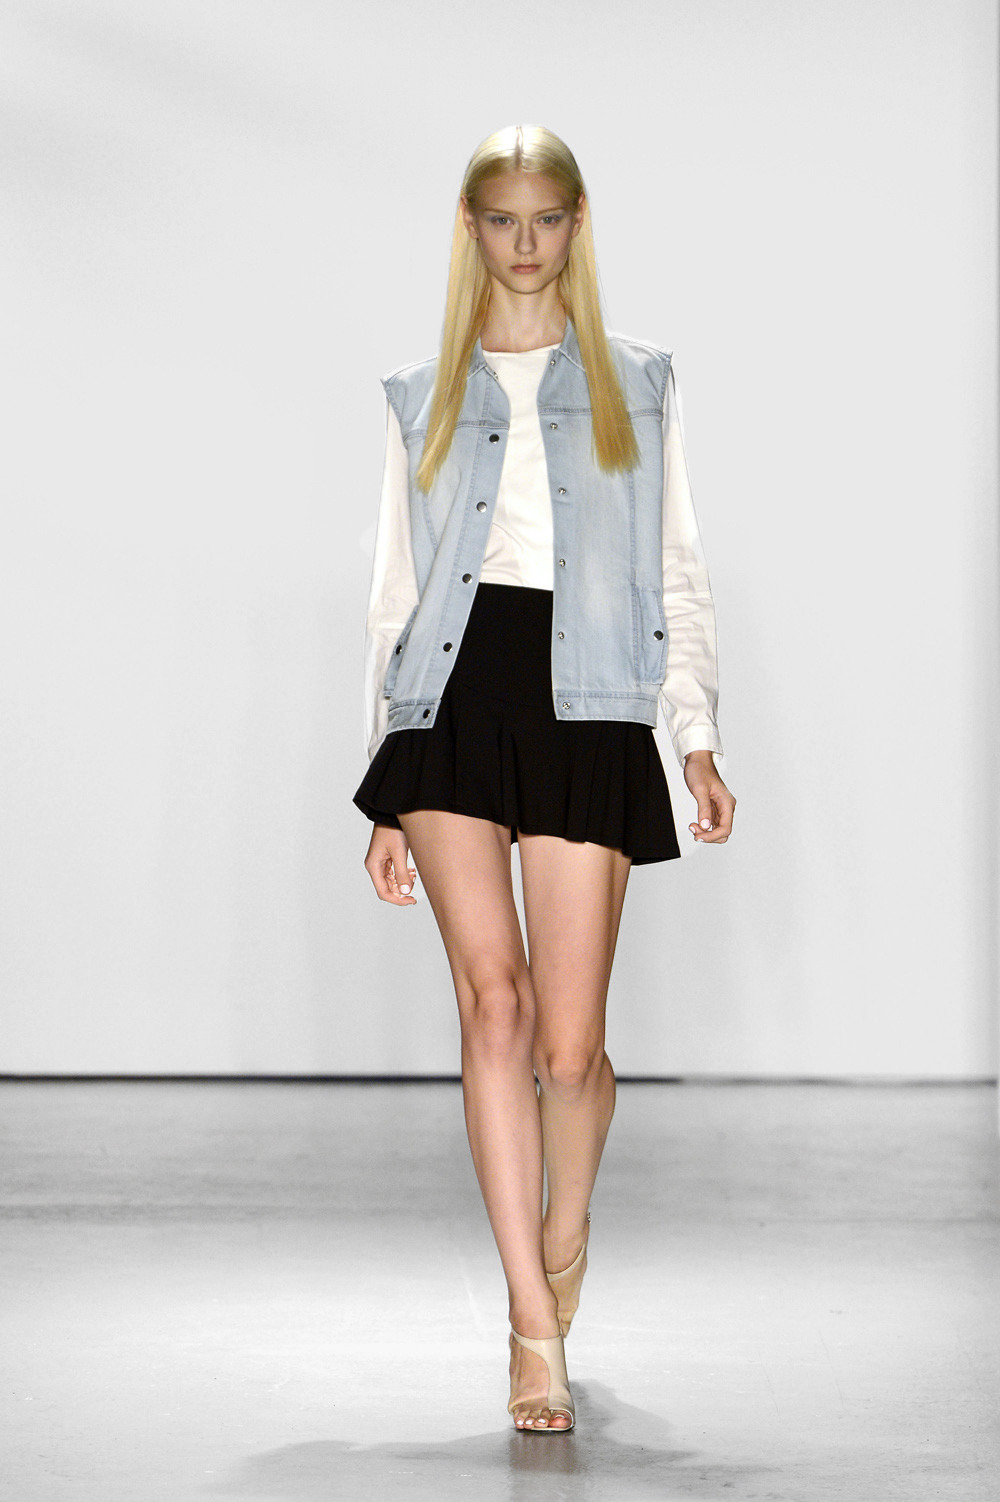 First look from the Spring/Summer 2013 runway show